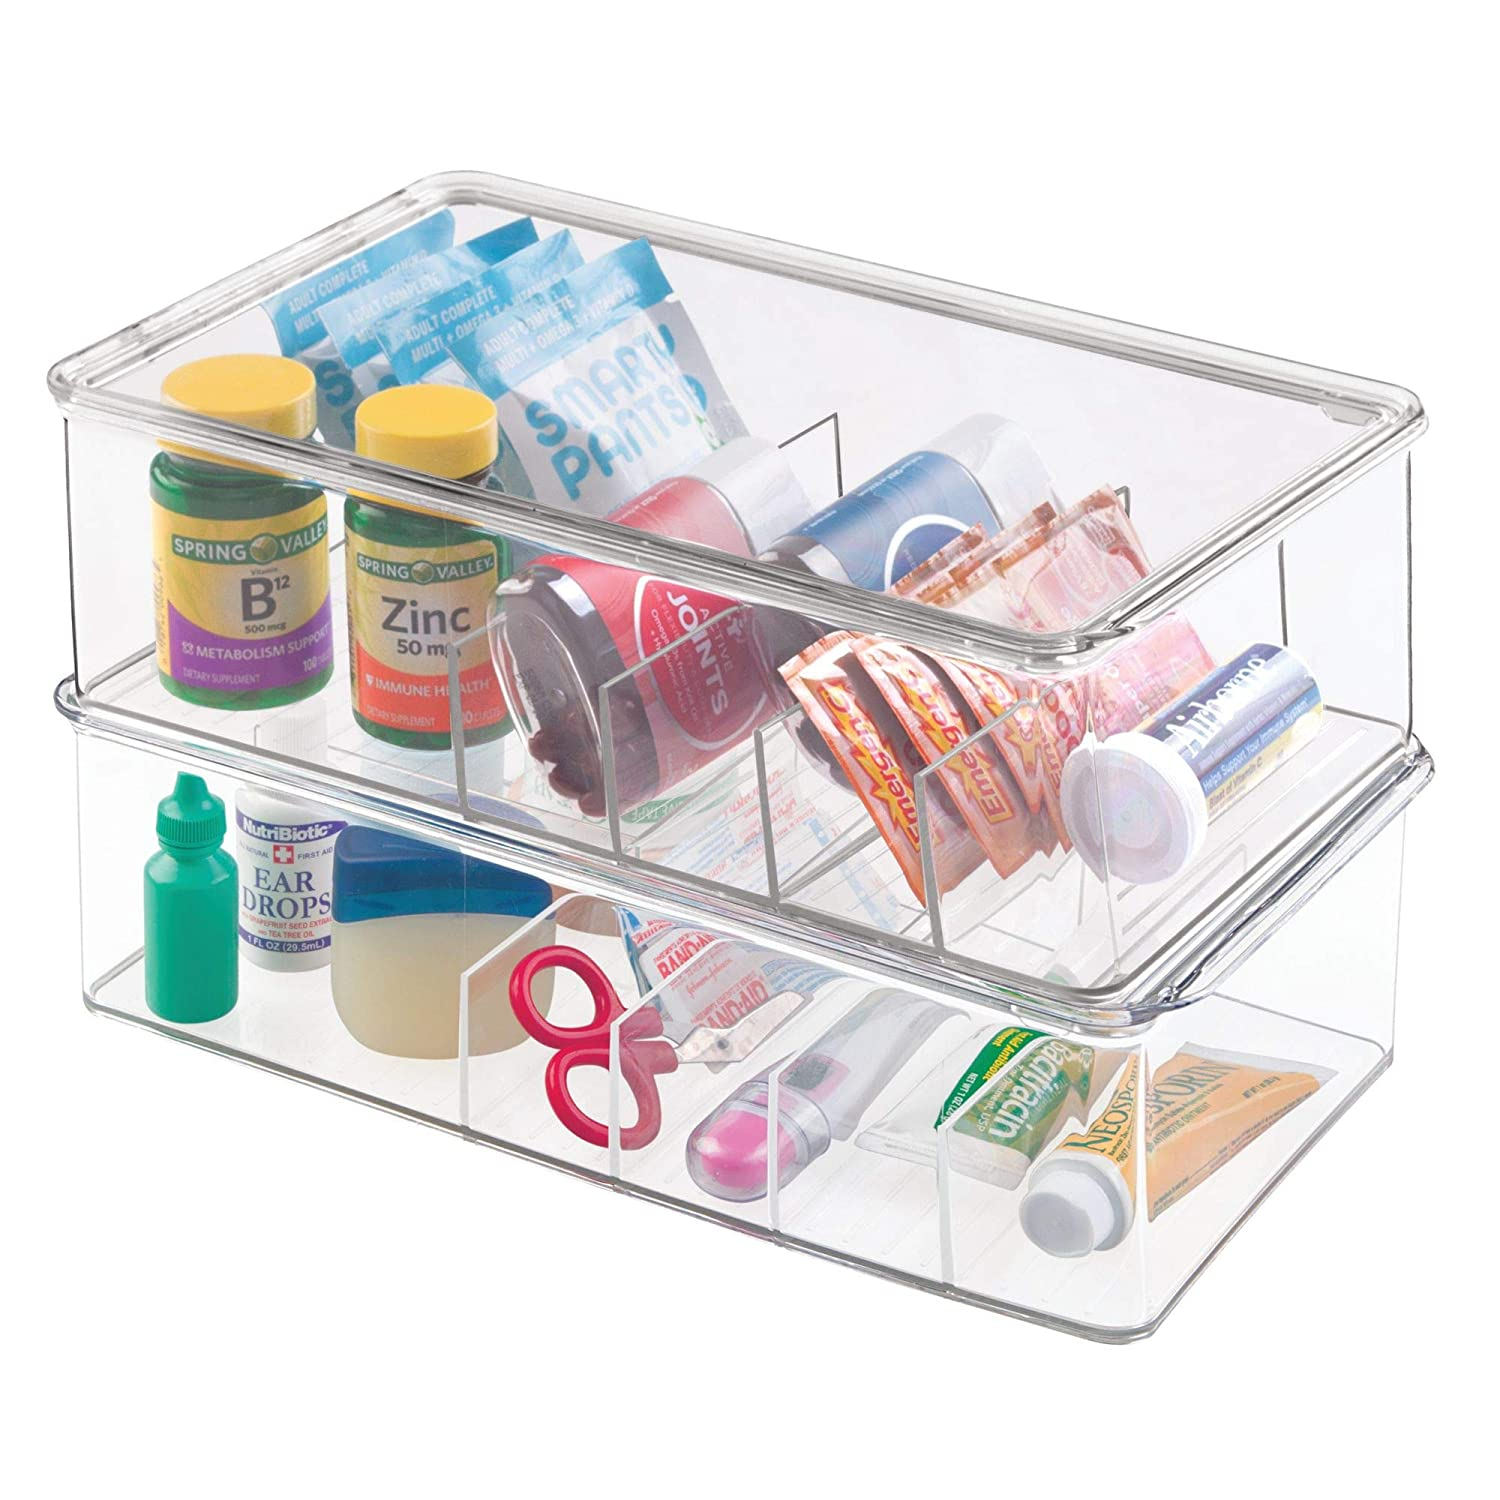 Amazon.com: mDesign Stackable Plastic Storage Bin Box with Lid - Divided Organizer for Vitamins, Supplements, Serums, Essential Oils, Medicine Pill Bottles, ...